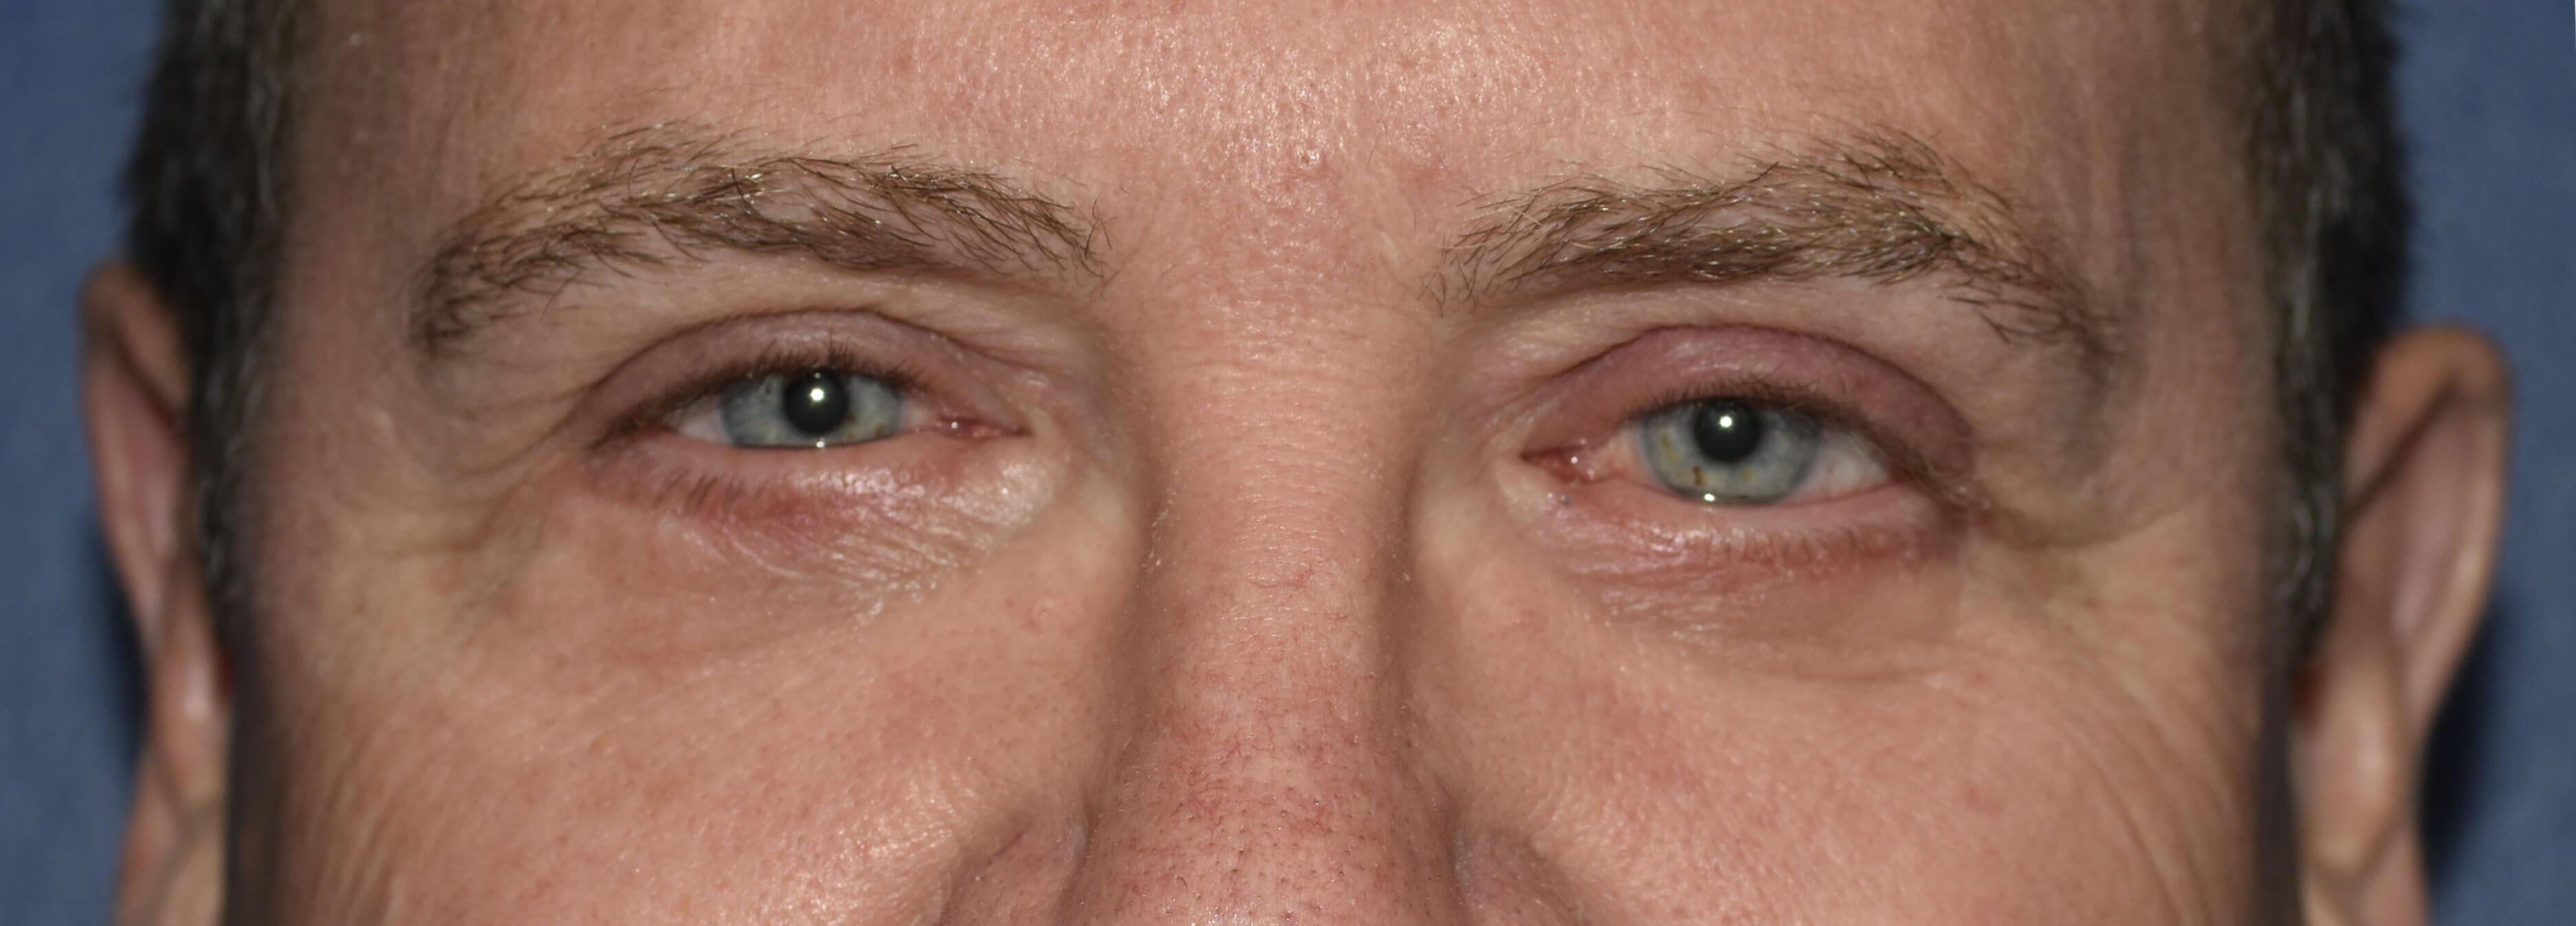 Eyelid Surgery 6 weeks after